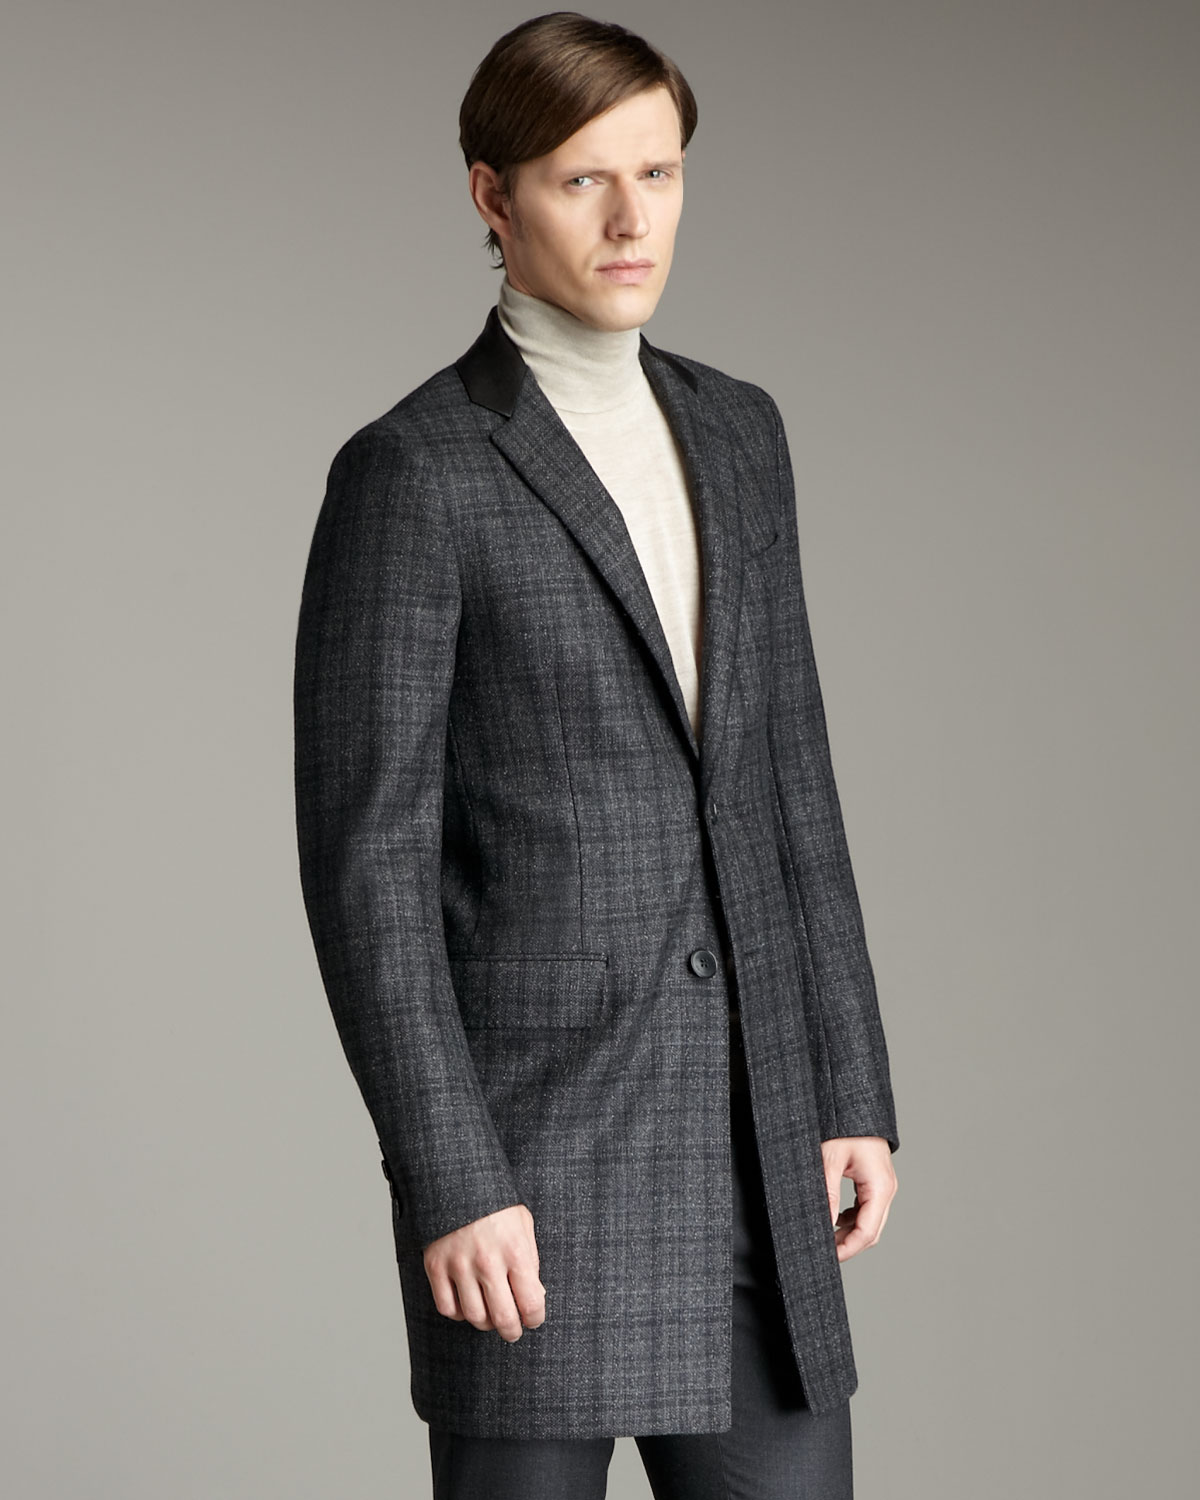 Valentino Leather-lapel Plaid Topcoat in Gray for Men | Lyst